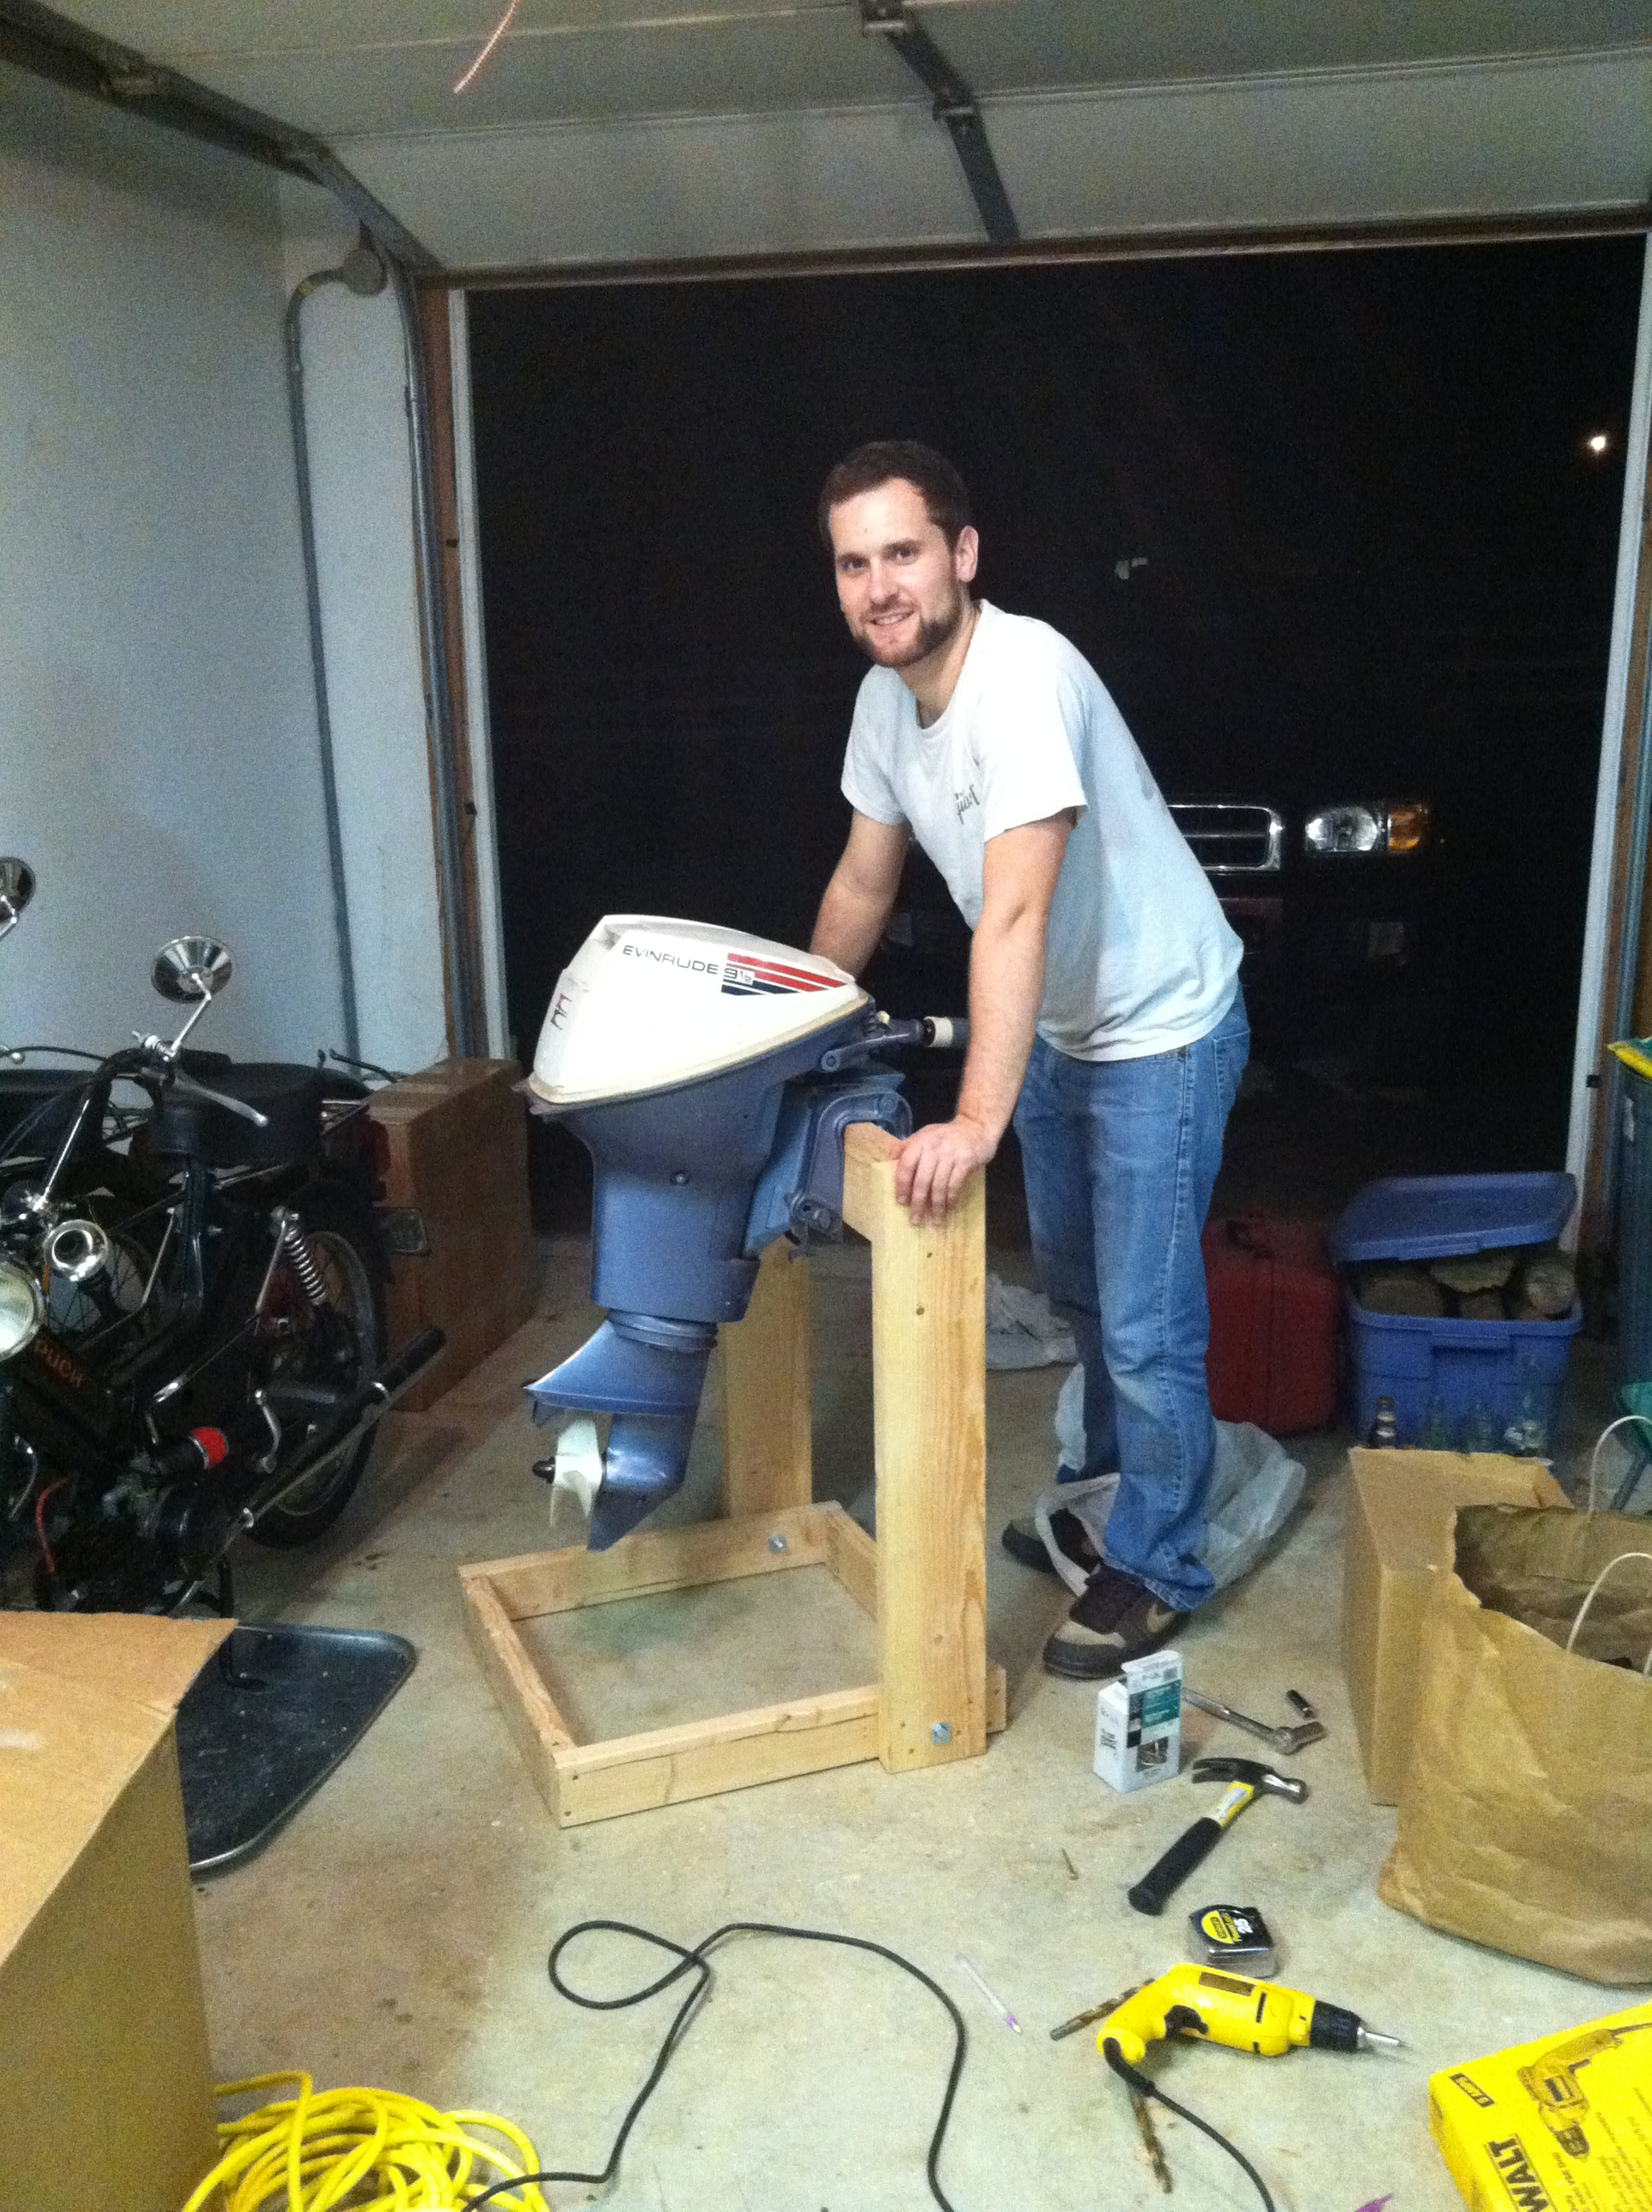 diy adirondack chair kit big and ottoman plans for wood outboard motor stand free download | testy39xqi